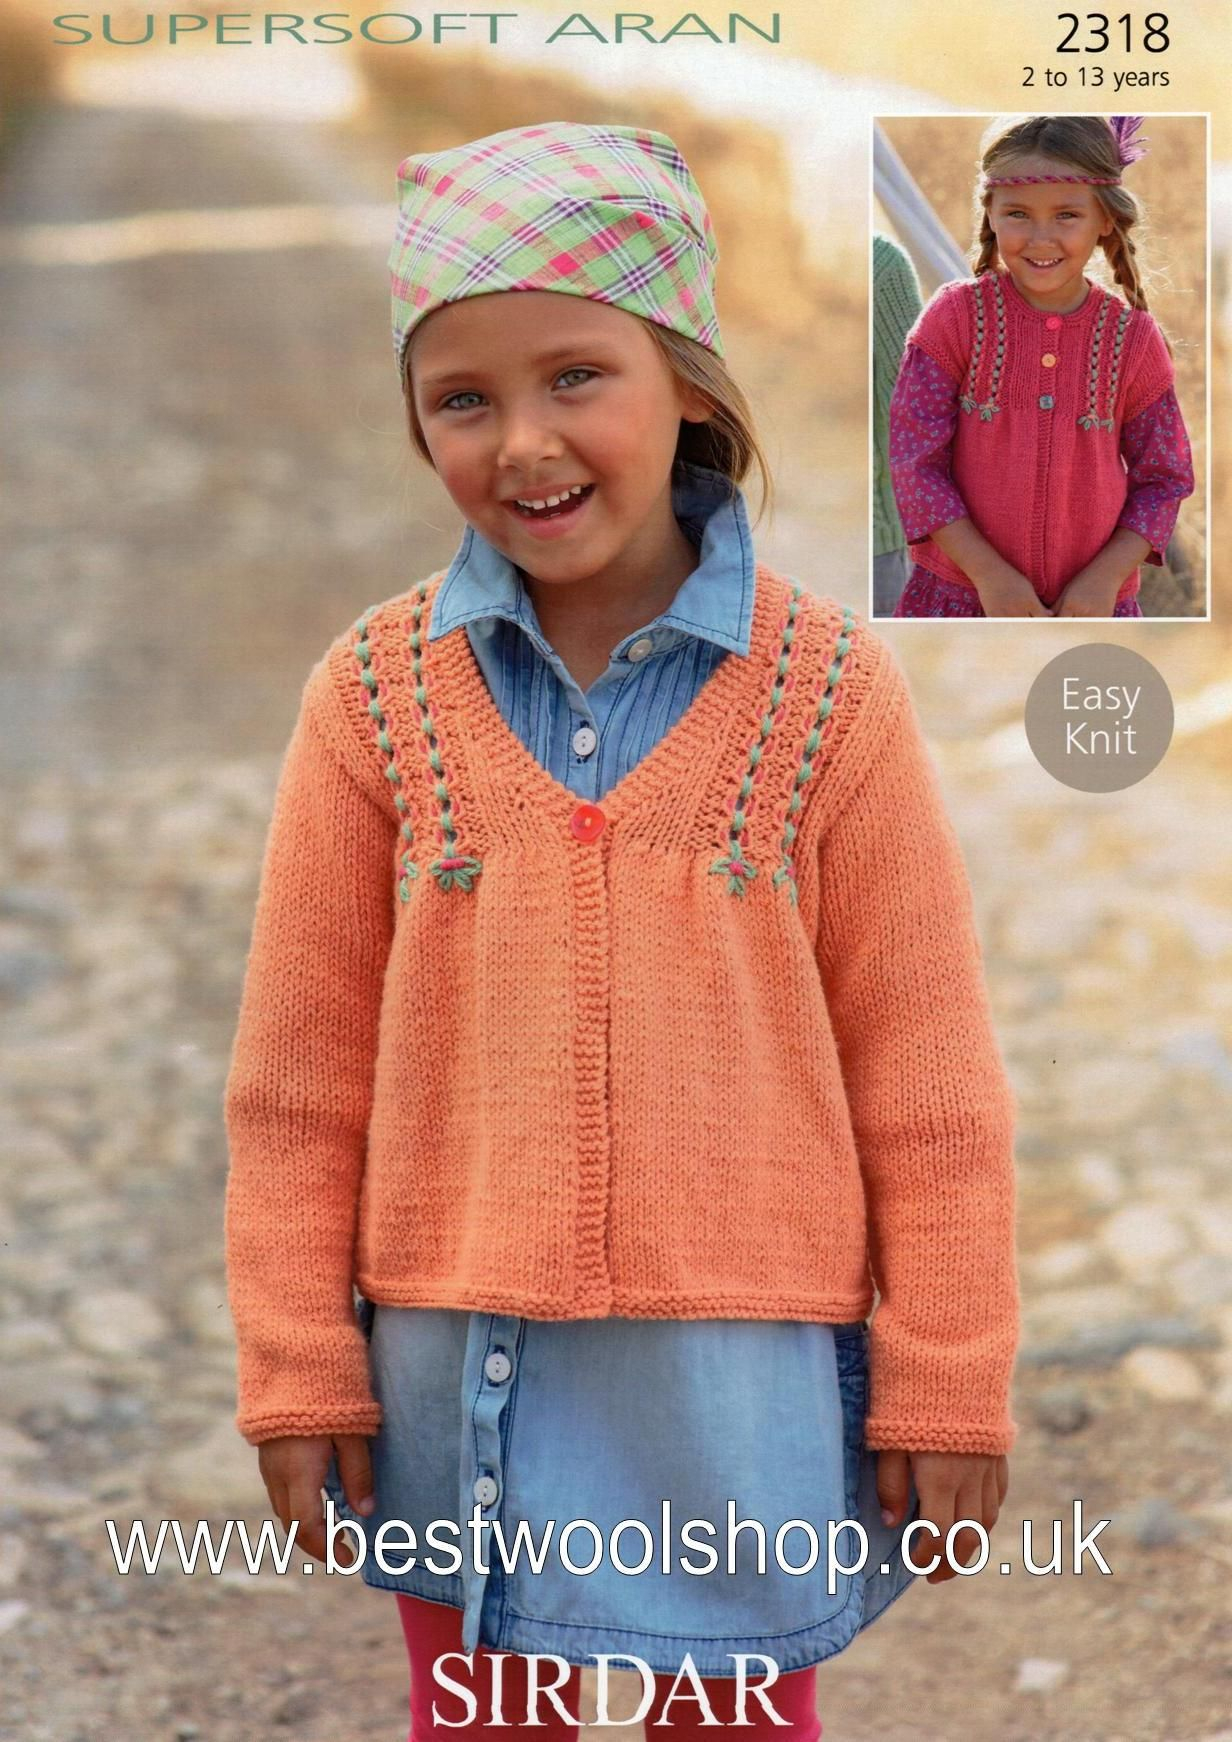 Easy Jumper Knitting Pattern 2318 Sirdar Supersoft Aran Easy Knit Long Short Sleeved Cardigan Knitting Pattern To Fit 2 To 13 Years